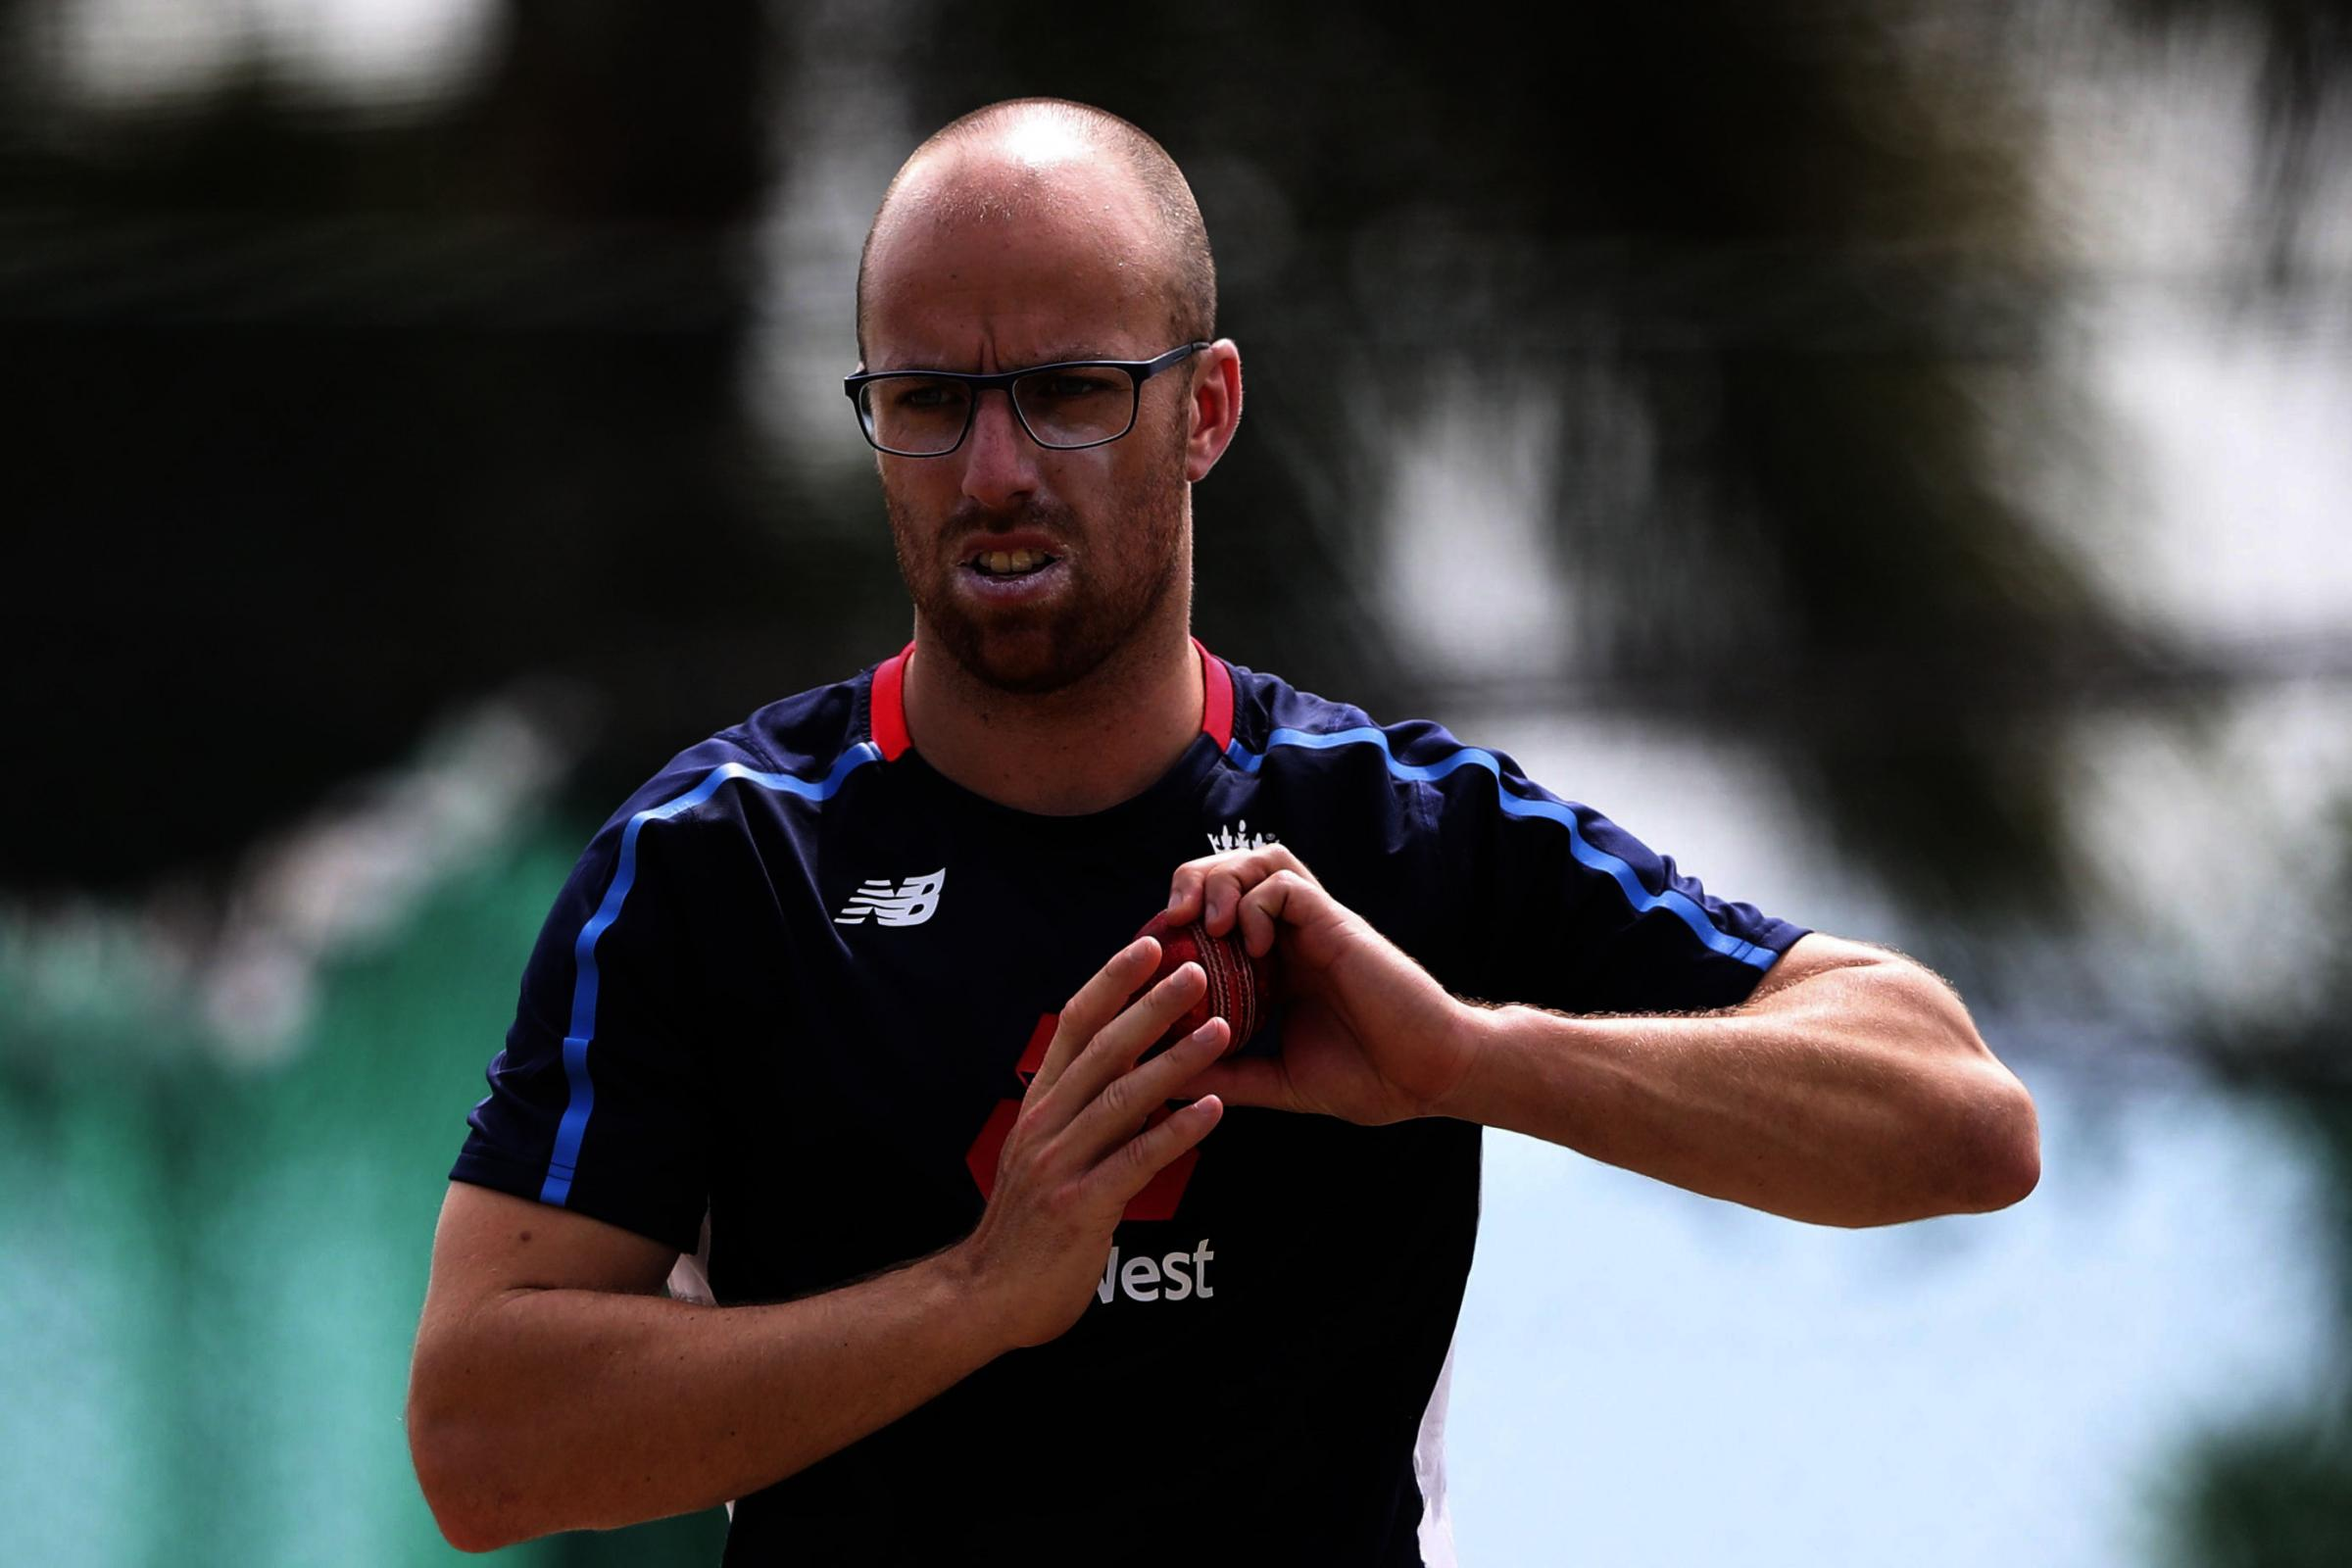 LEFT OUT: Somerset and England's Jack Leach prepares to bowl during a training session at the Sir Vivian Richards Stadium in North Sound, Antigua and Barbuda. Pic: PA Wire